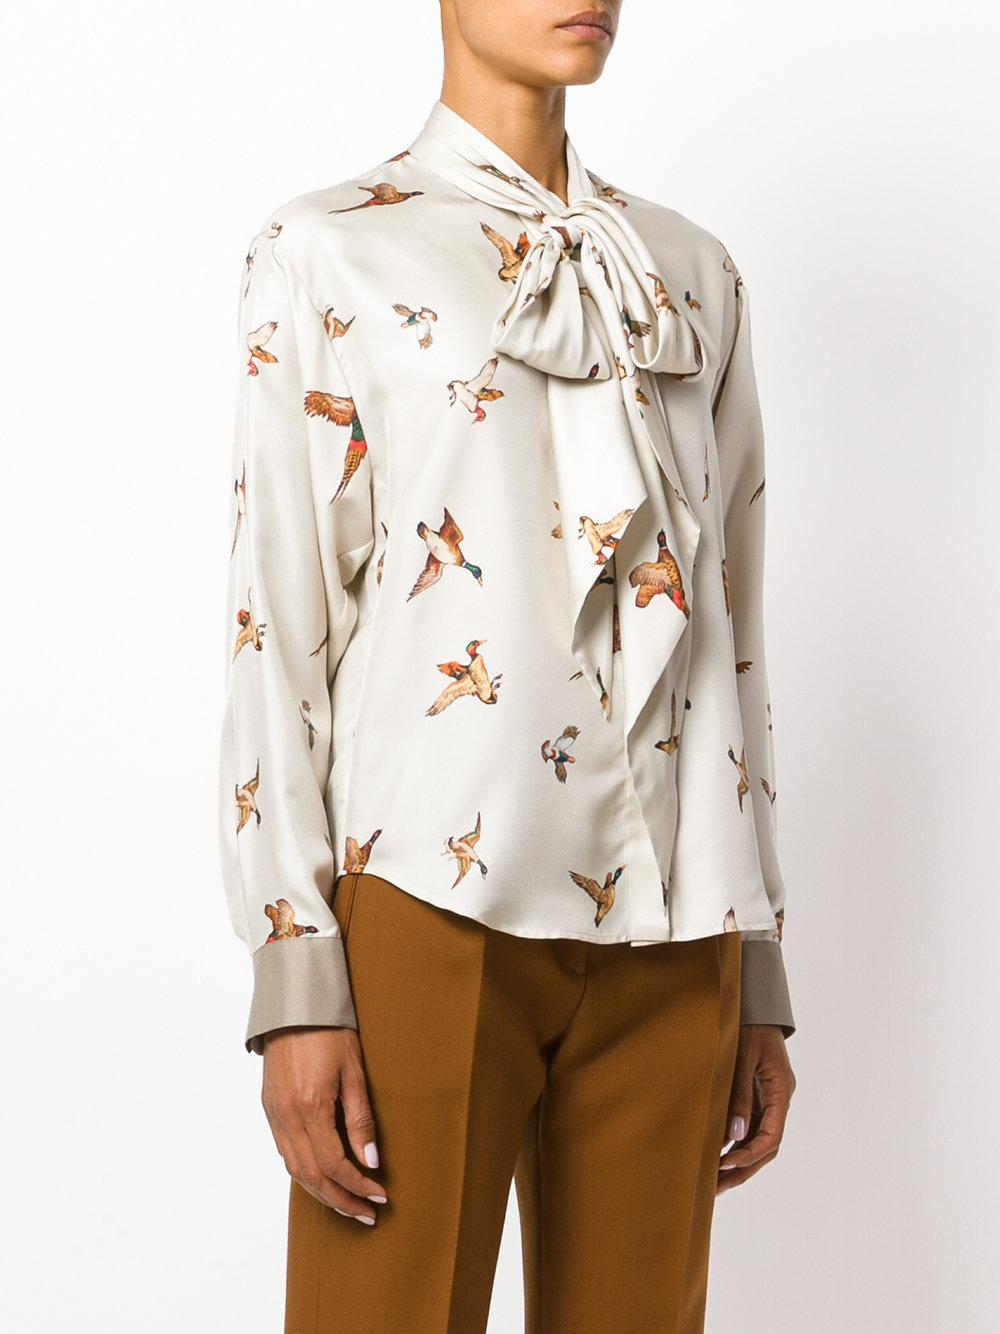 Lyst In Blusa Mulberry Stampata Natural pzrp8qX